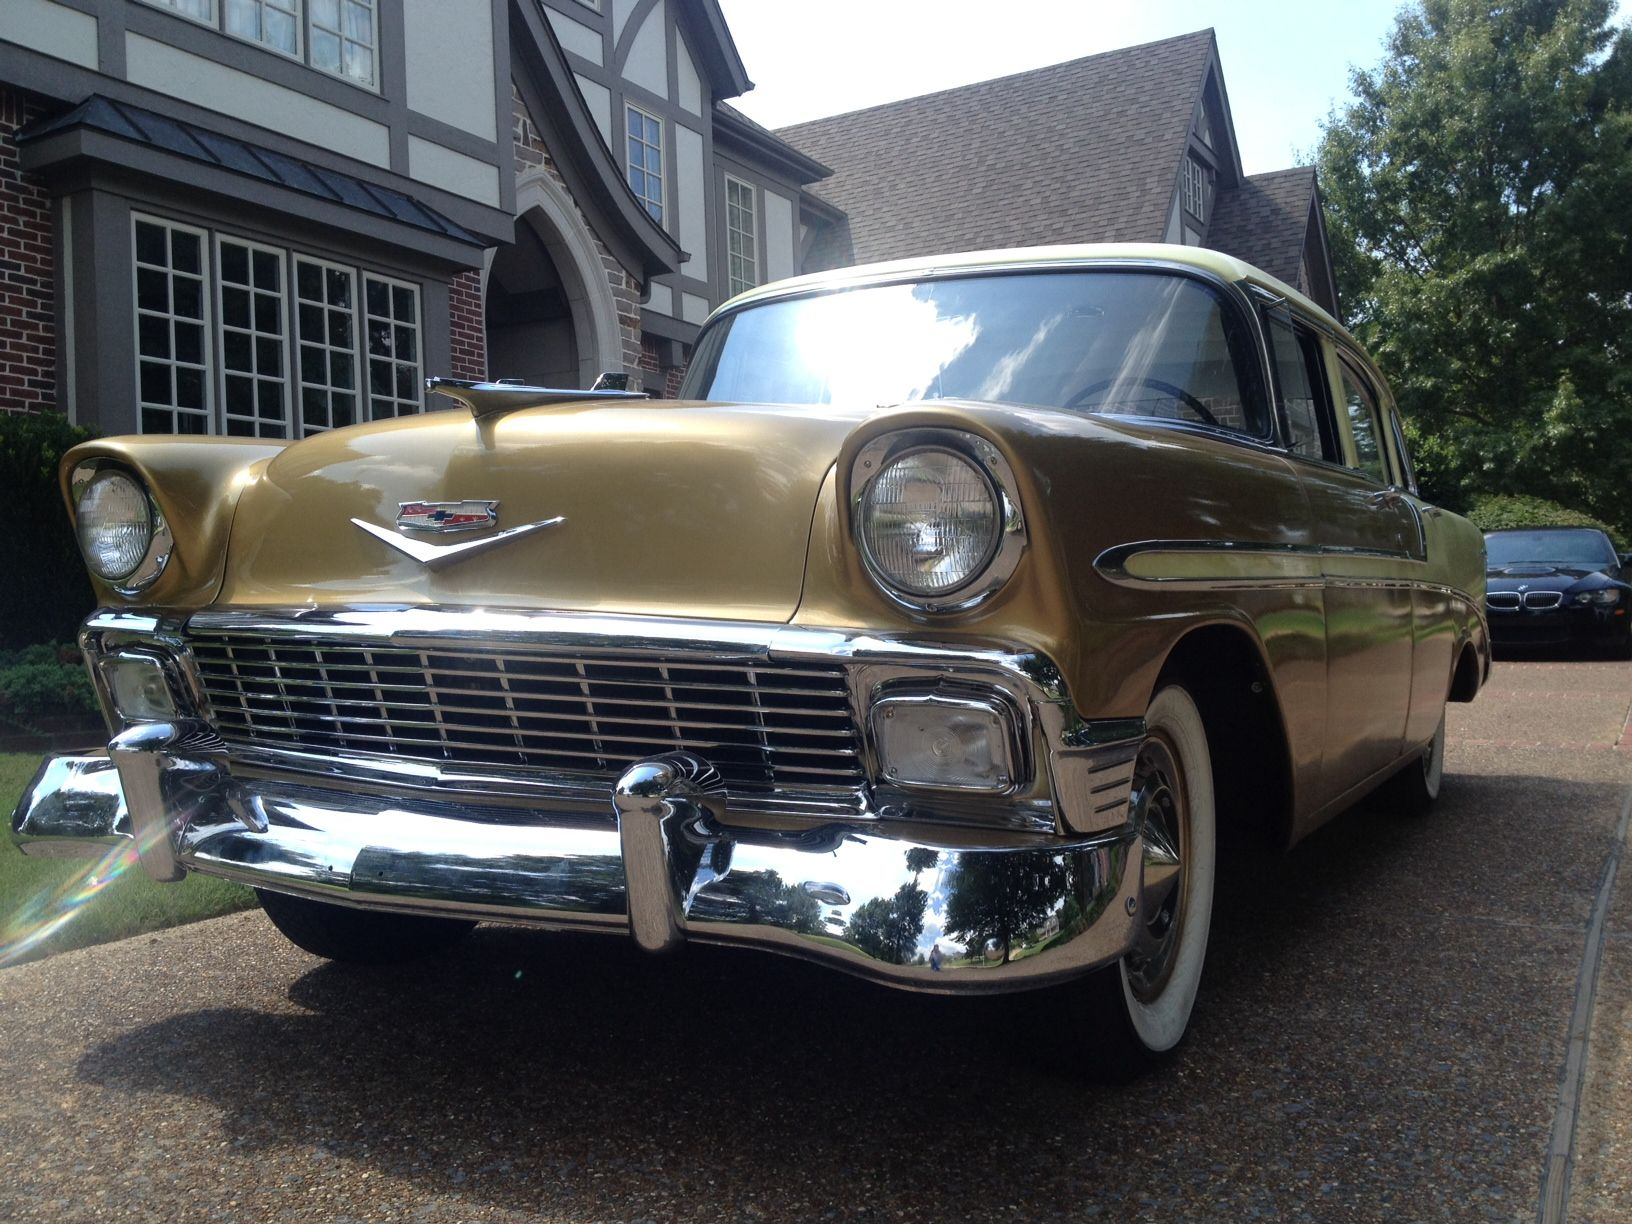 1956 chevrolet bel air images photo 56 chevy belair dv 06 - Chevywt 56 Bel Air 4 Door Project Archive Page 6 Trifive Com 1955 Chevy 1956 Chevy 1957 Chevy Forum Talk About Your 55 Chevy 56 Chevy 57 Chevy